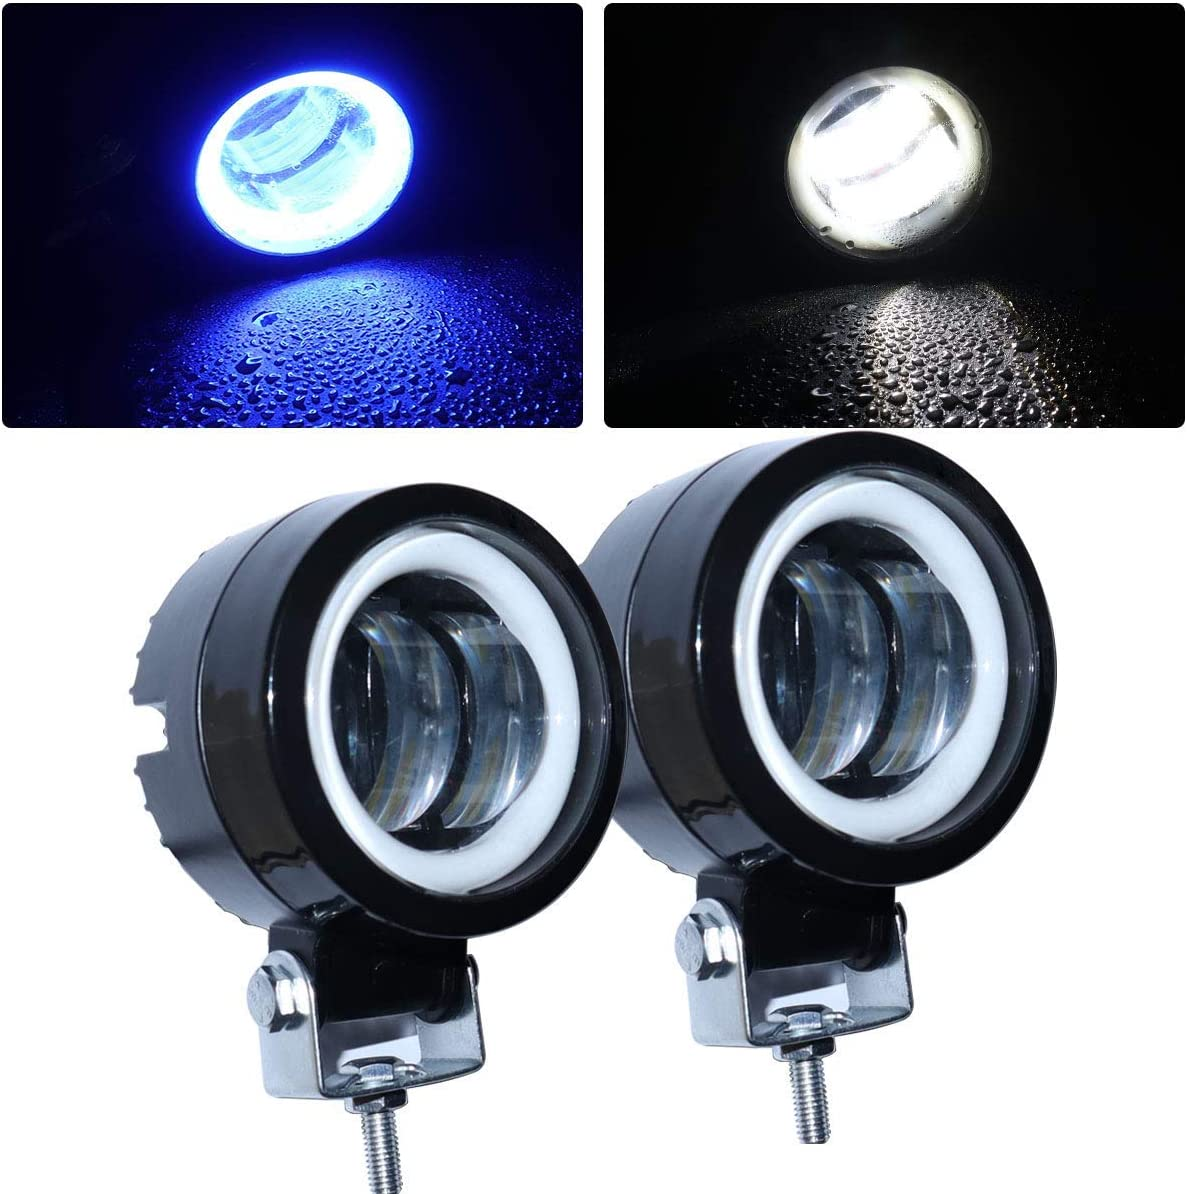 LED Fog Light for Motorcycle Lights White Falconstar Motorcycle Driving Lights 3 Inch 40W Round Headlight with Blue Angle Eye Running Light for Off Road